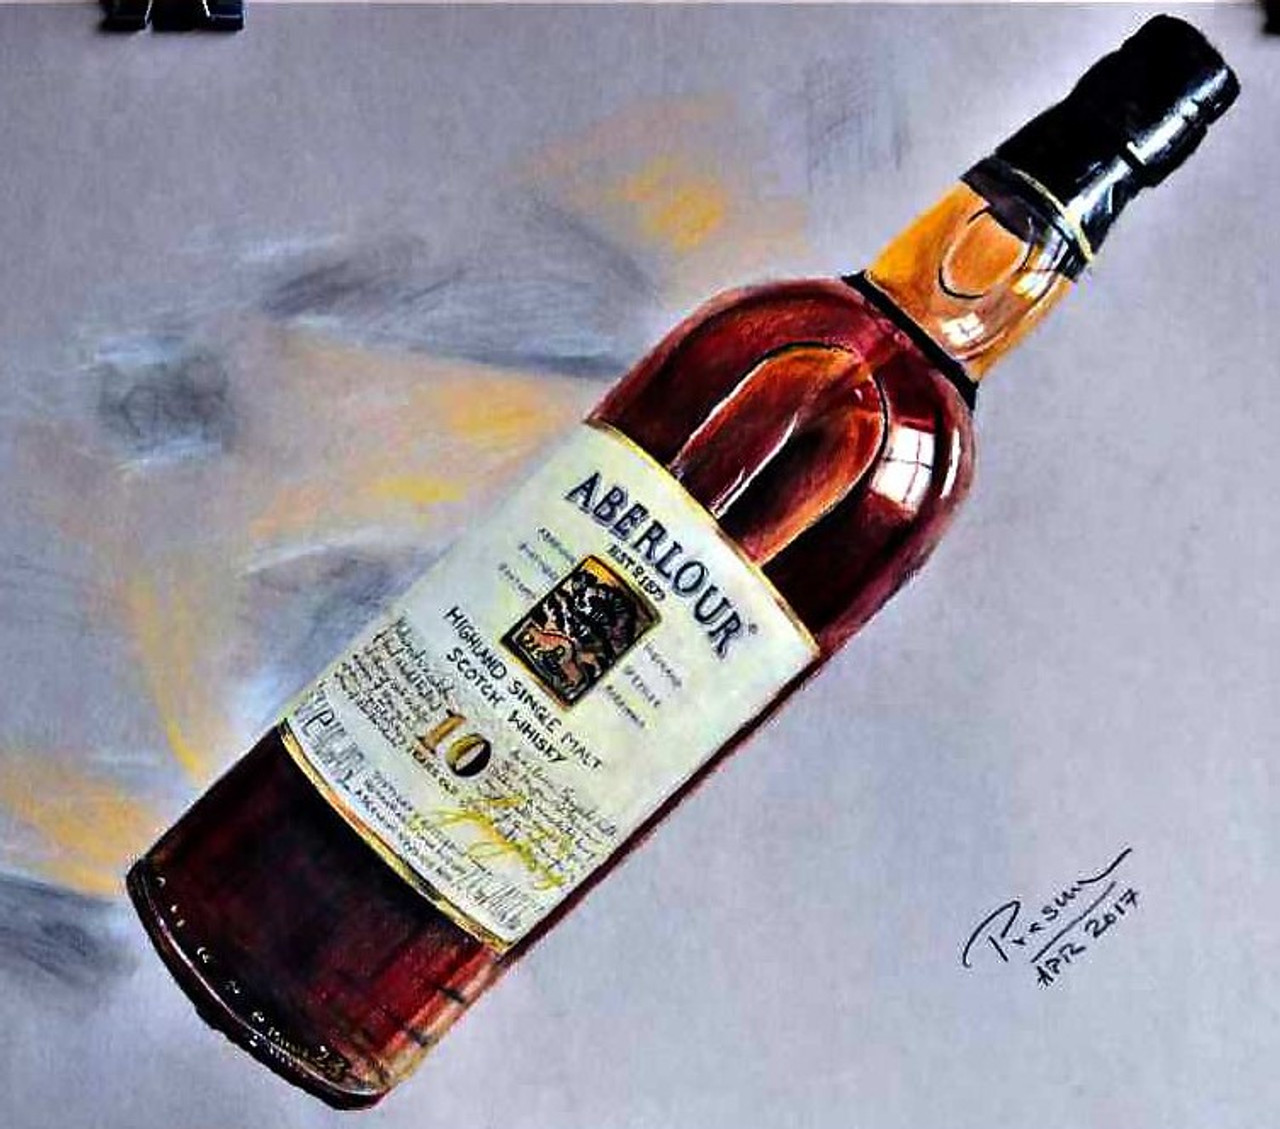 Buy Aberlour Bottle Handmade Painting By Prasun Roy Choudhury Code Art 2629 19230 Paintings For Sale Online In India